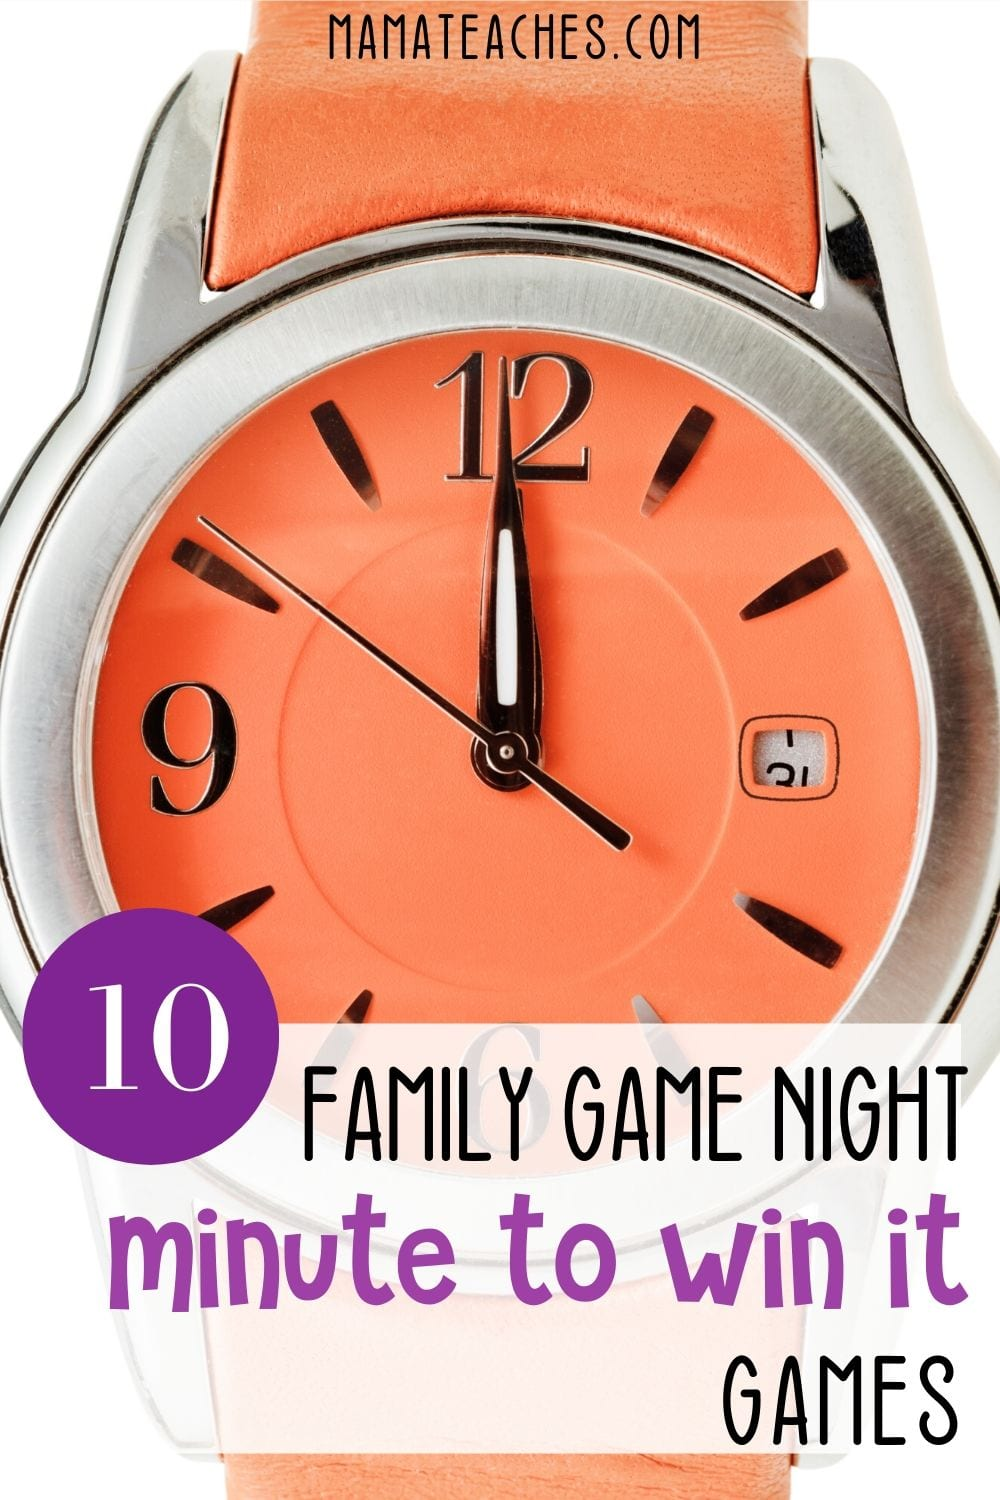 10 Family Game Night Minute to Win It Games - MamaTeaches.com